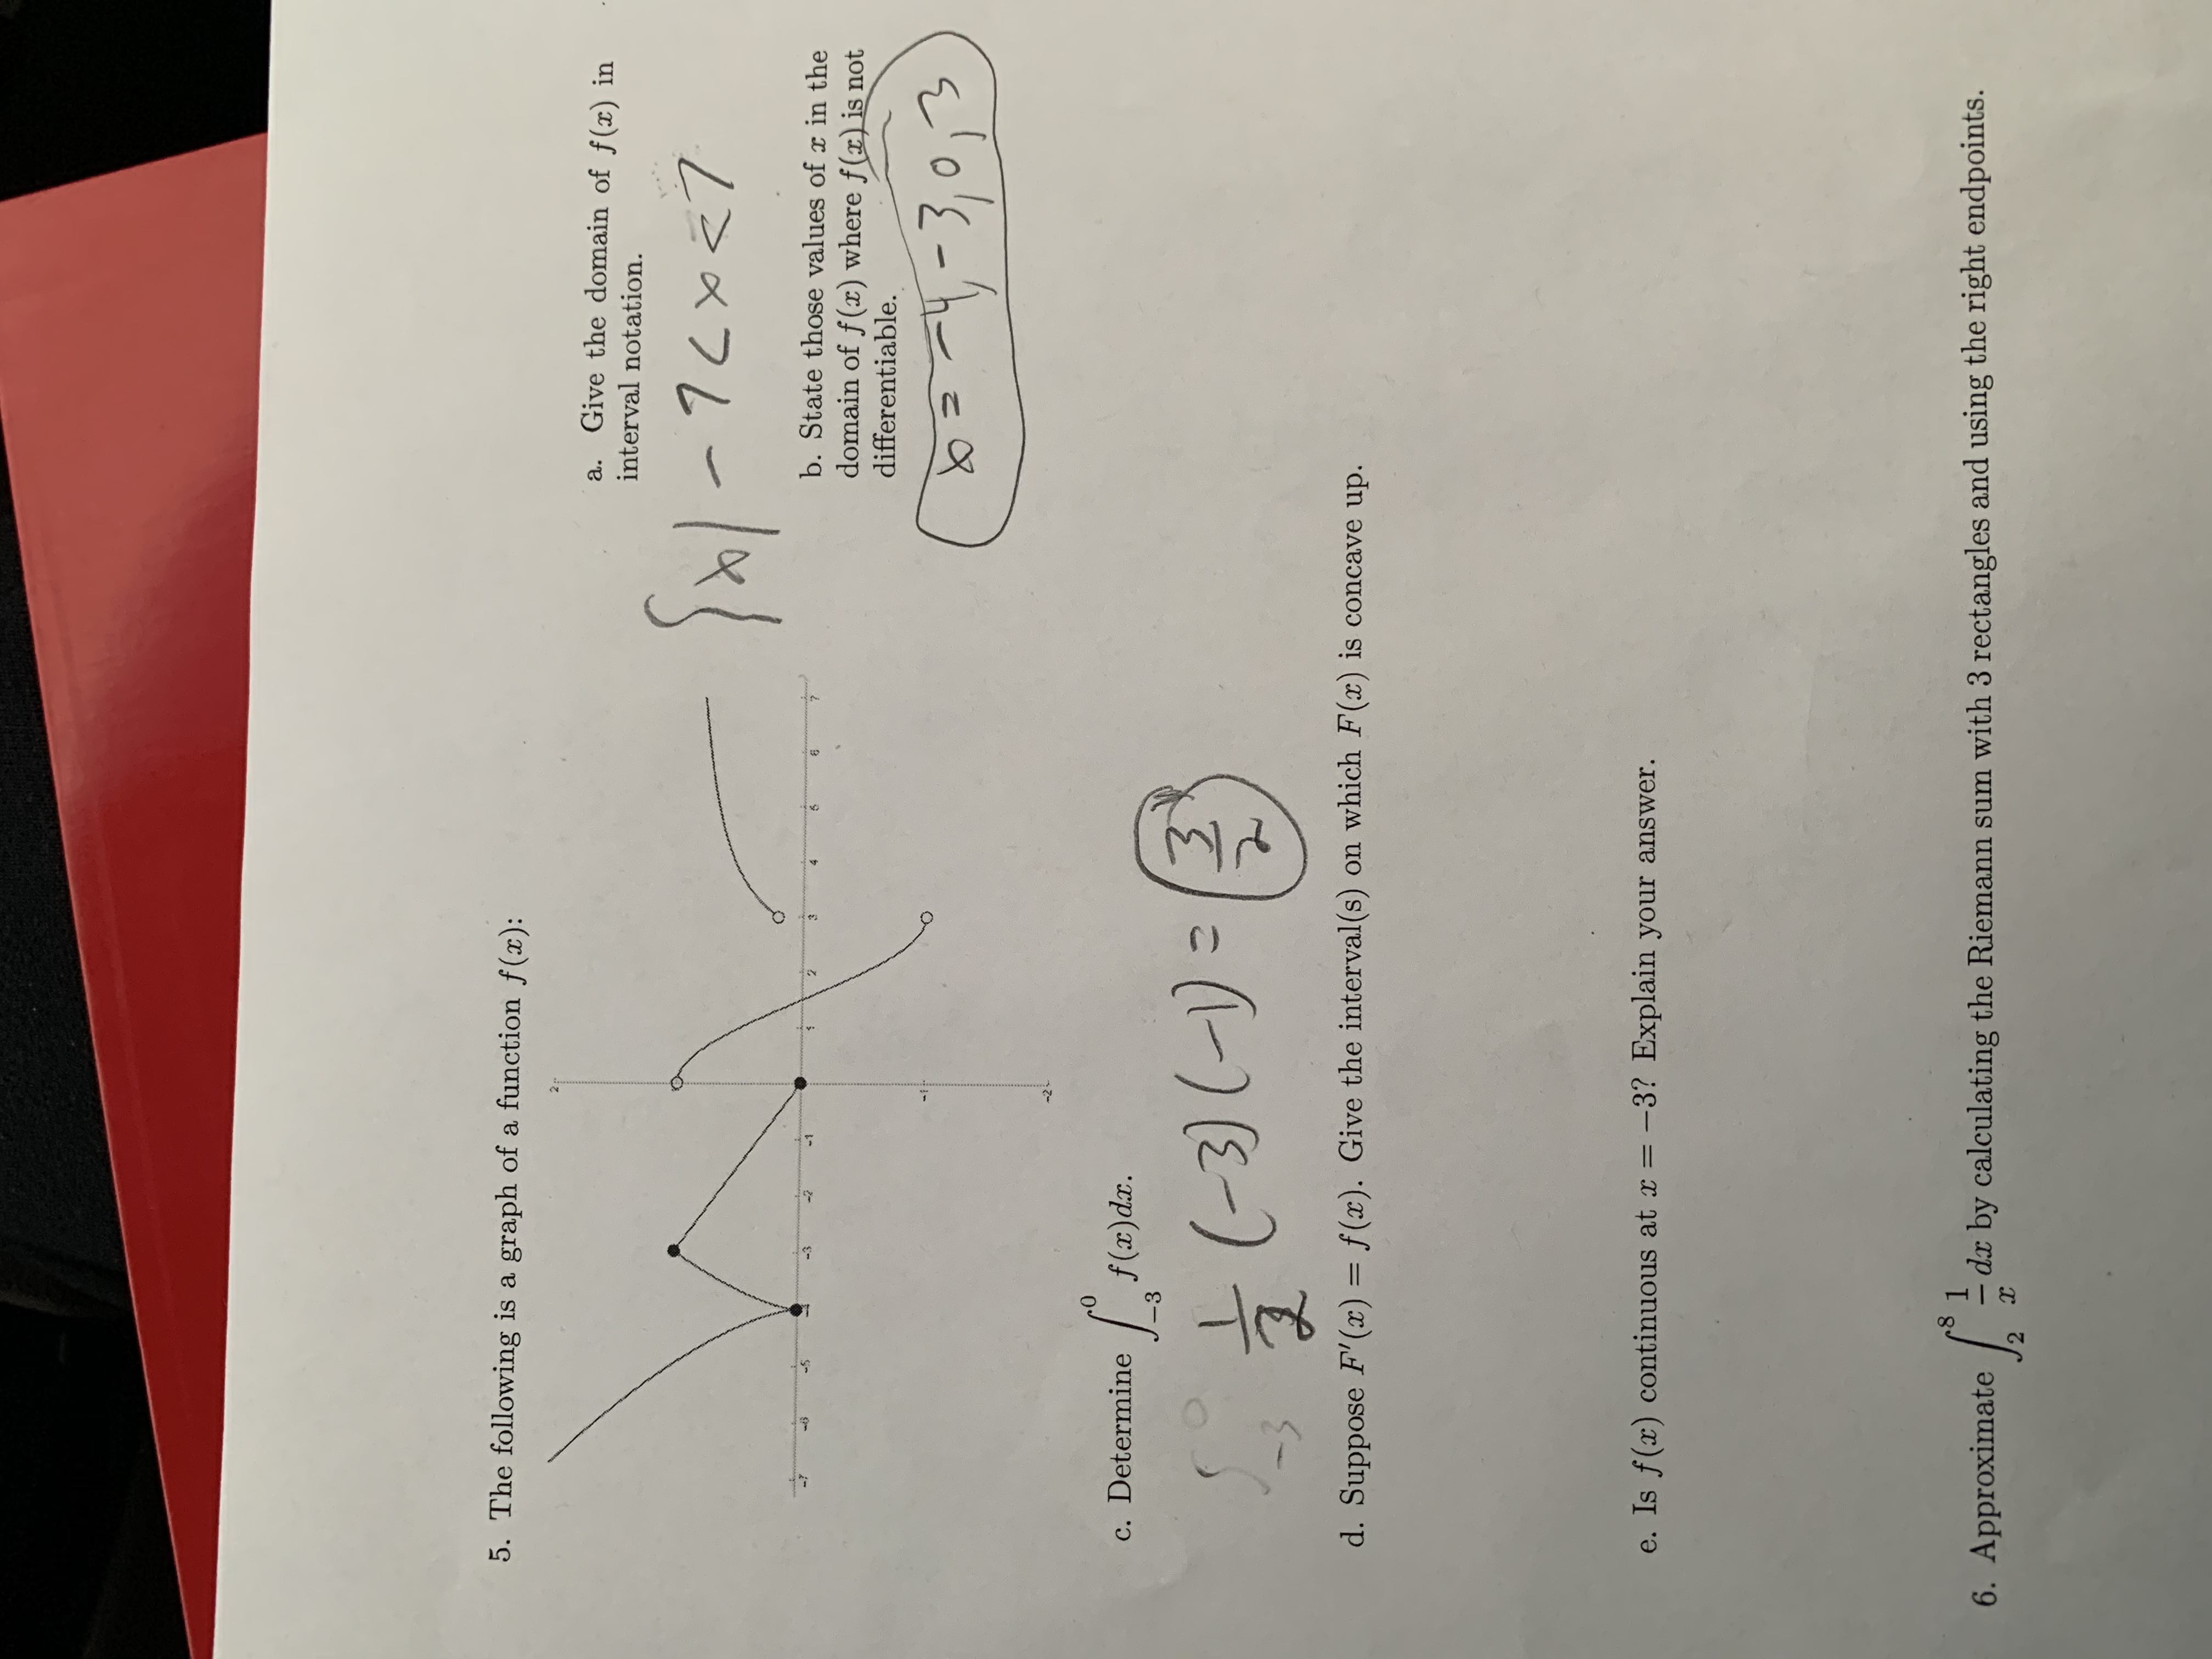 Answered 5 The Following Is A Graph Of A